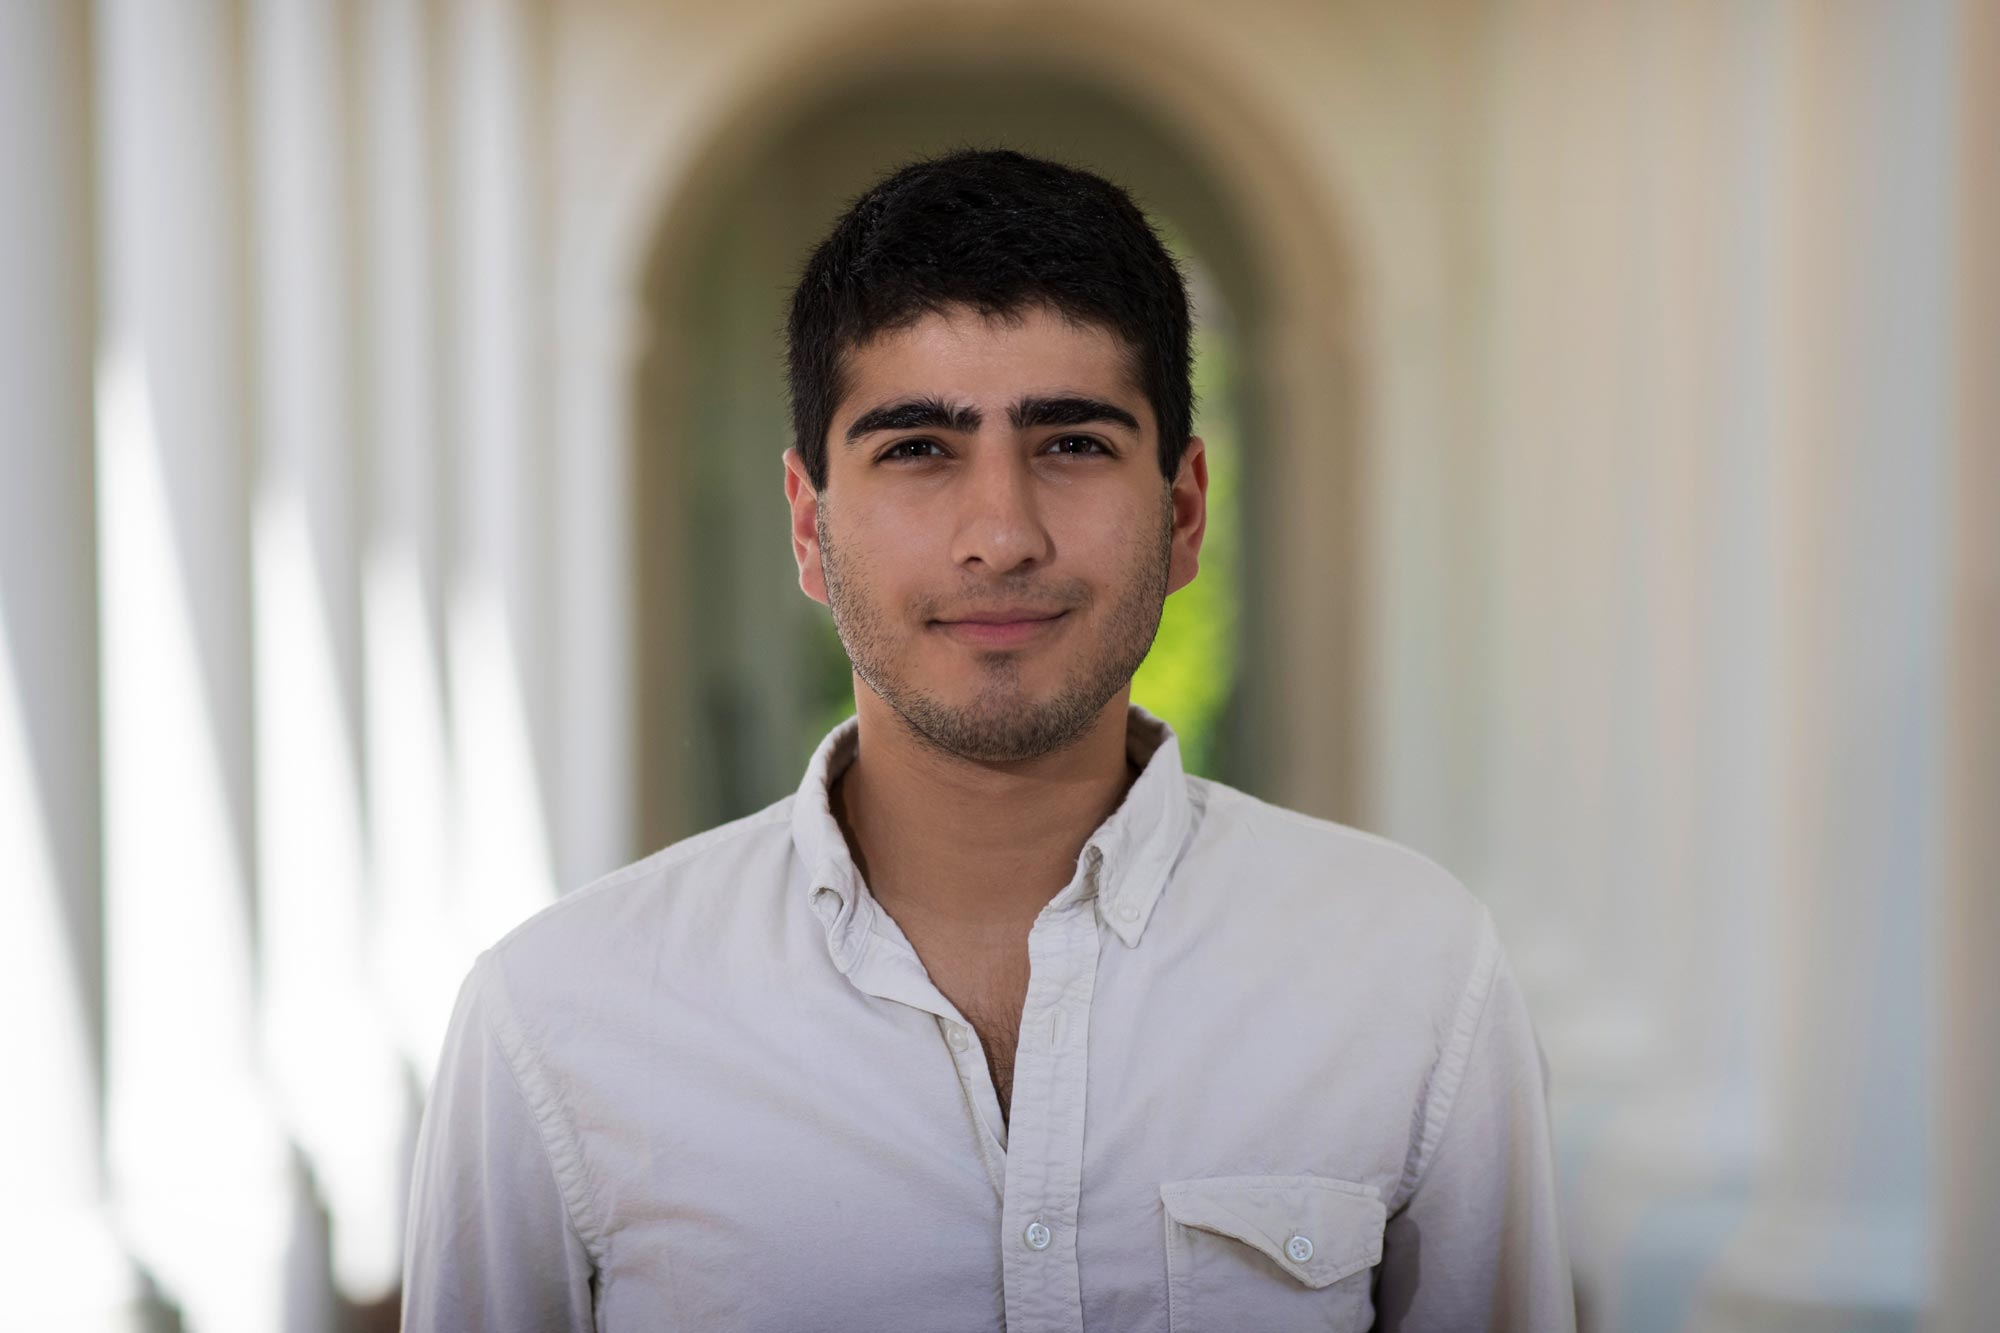 Daniel Naveed Tavakol will research tissue engineering in Switzerland on a fellowship from the Whitaker International Program.